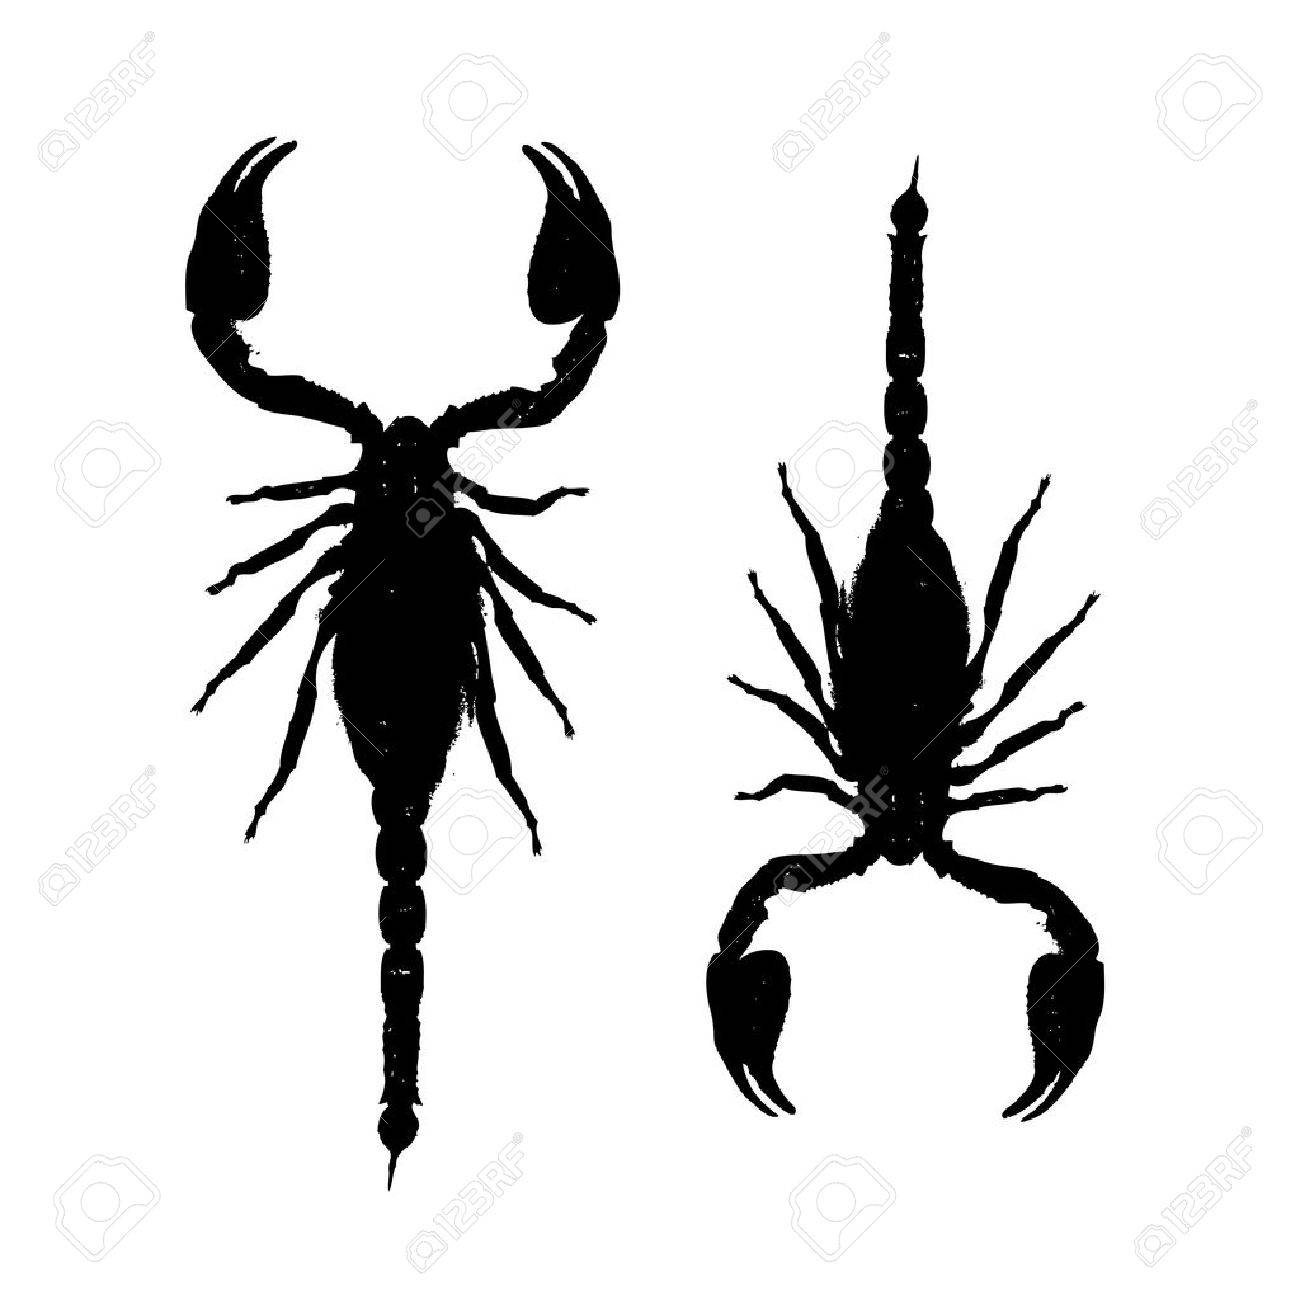 Scorpions, black silhouette for your design Stock Vector - 22842534